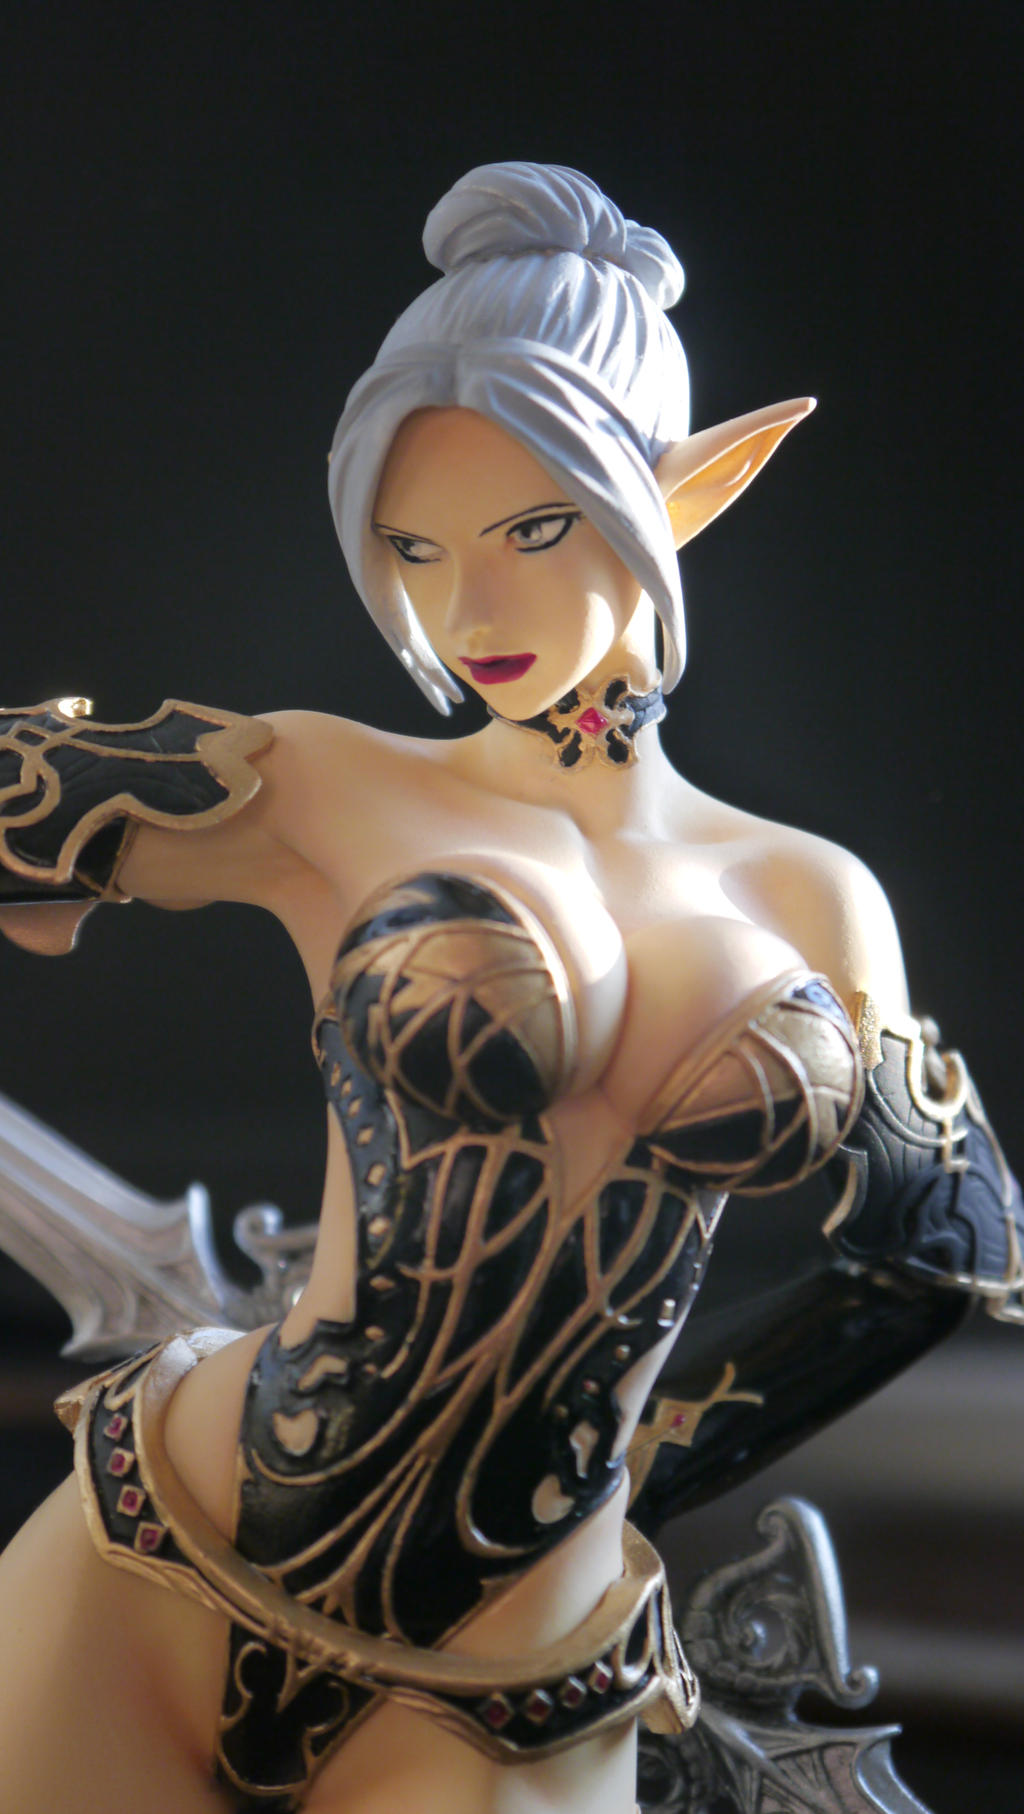 Lineage 2 porn dark elf exposed girls